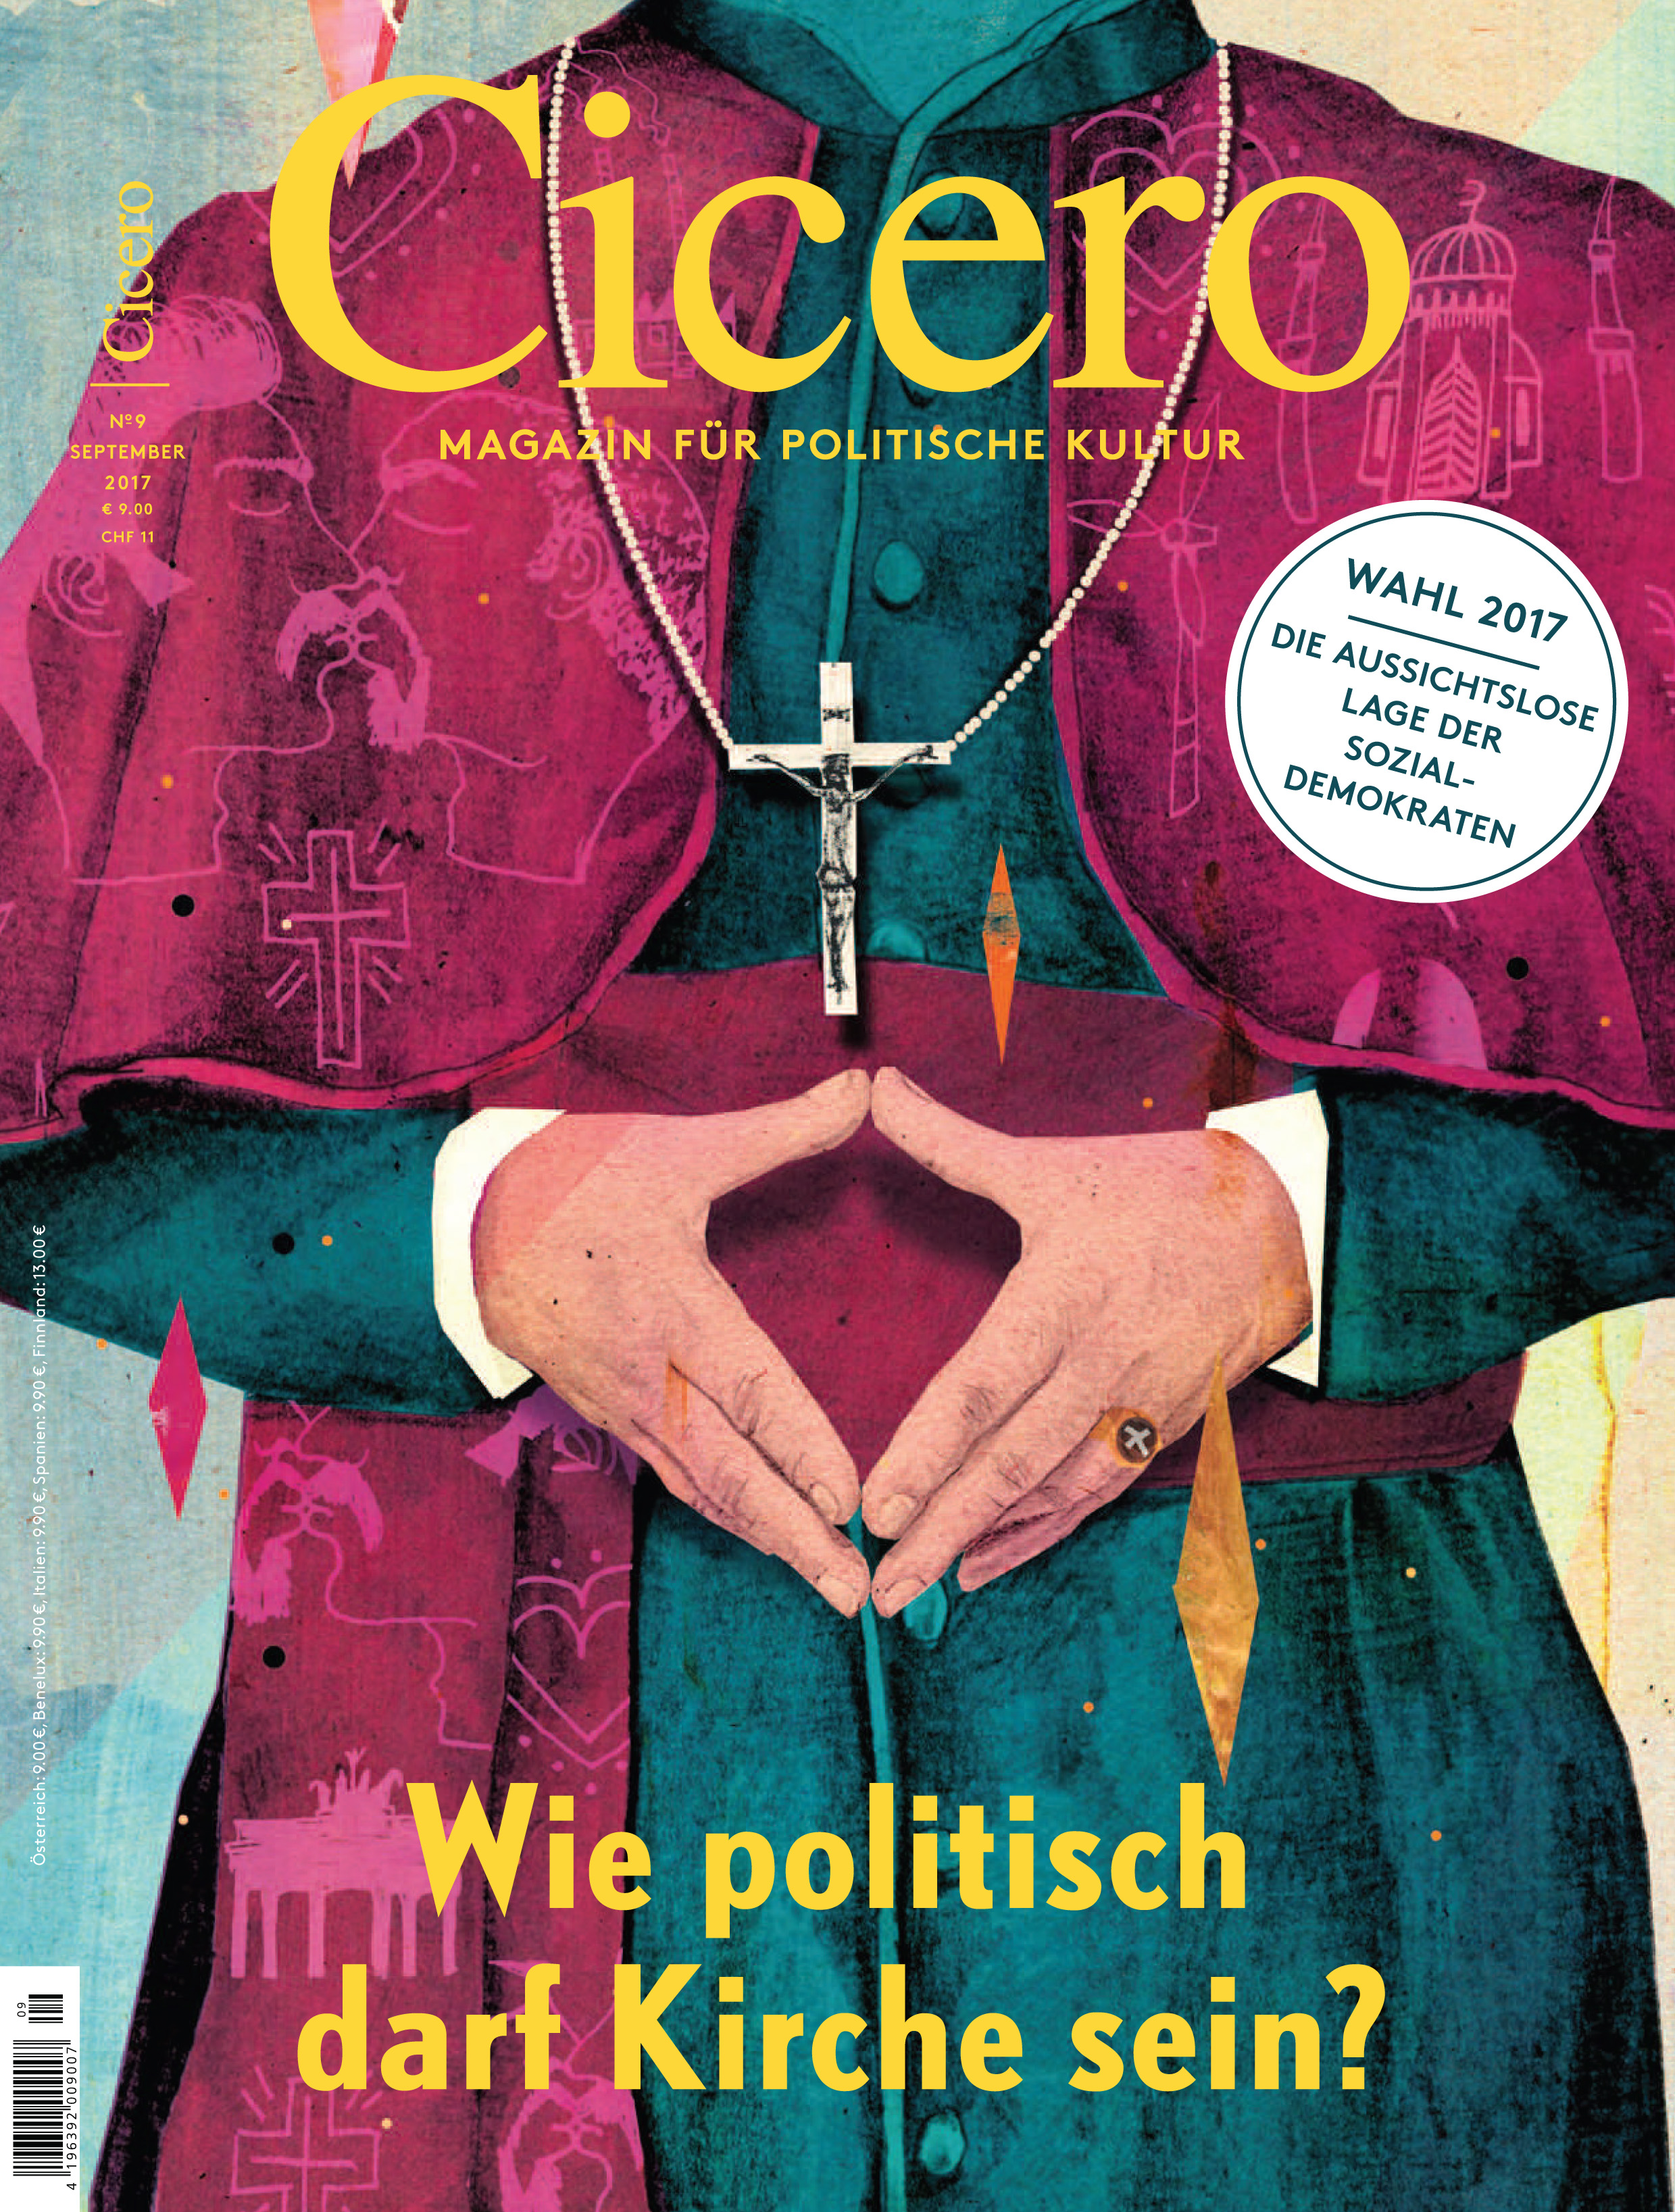 Cicero-Septemberausgabe